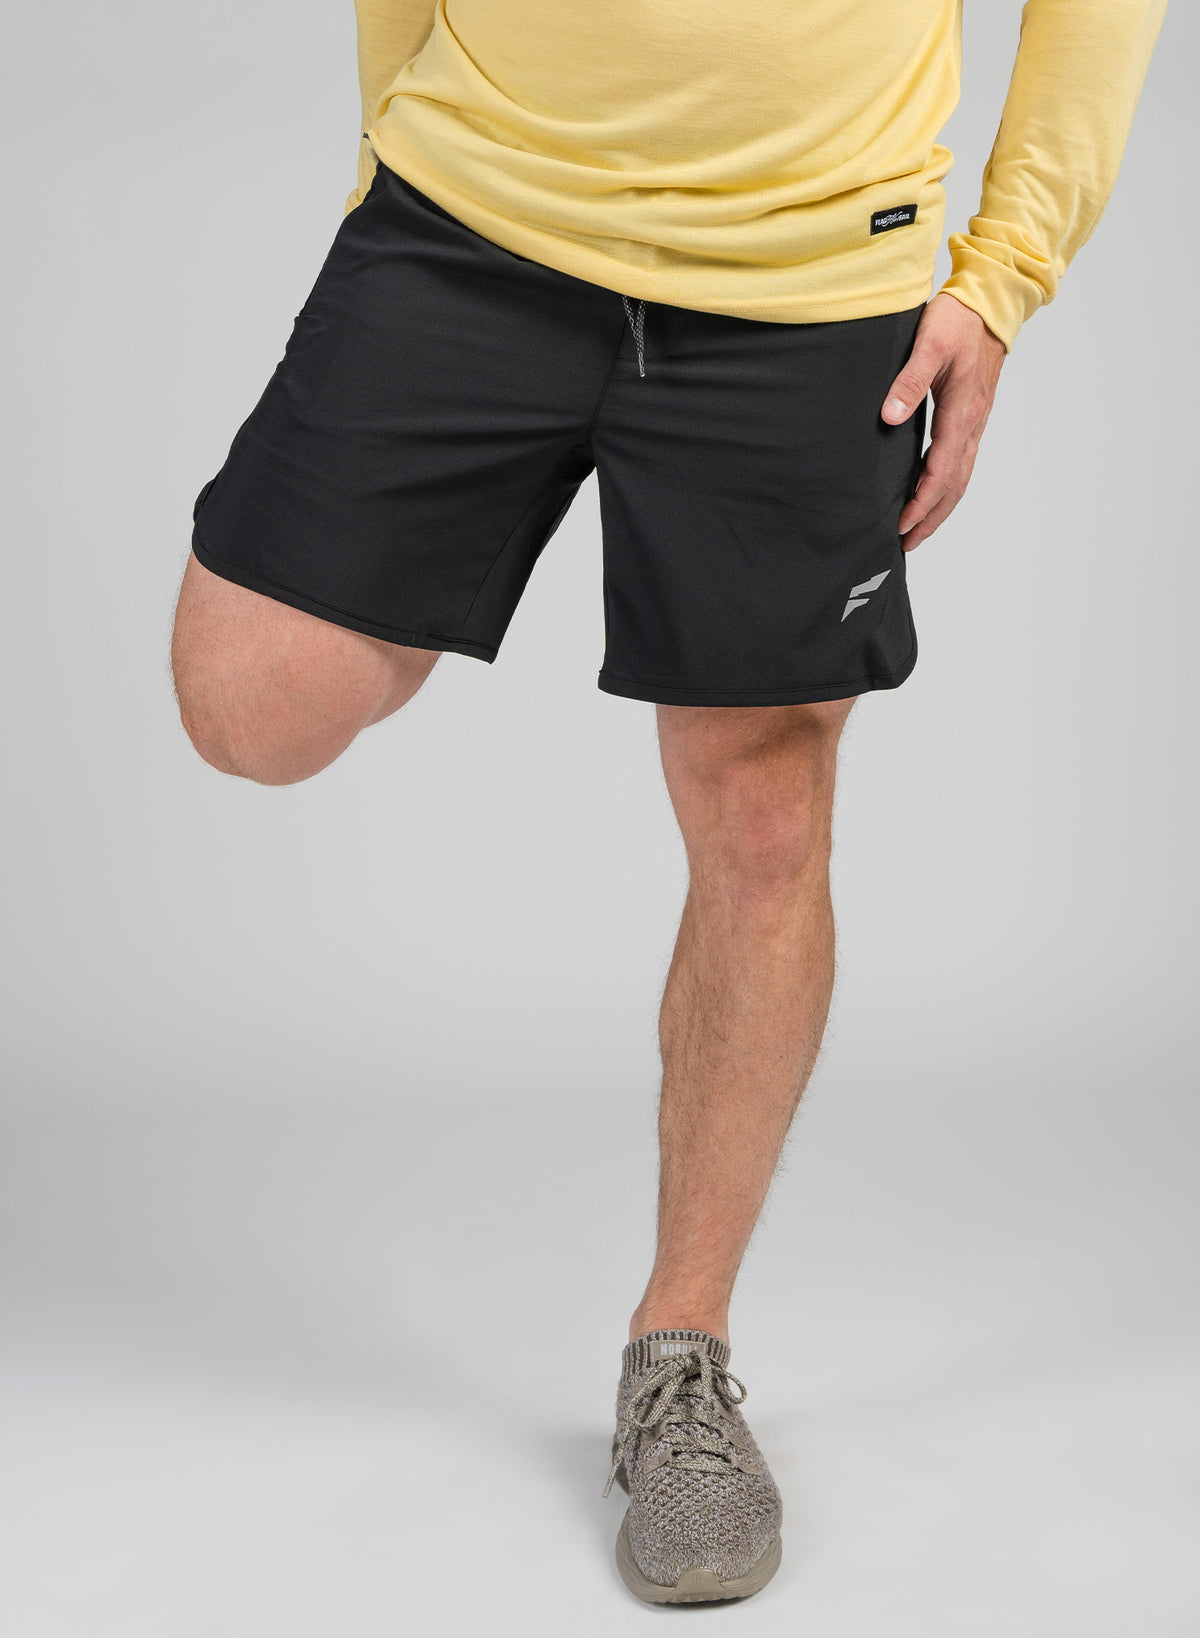 MEN'S APEX SHORTS 2.0 - BLACK